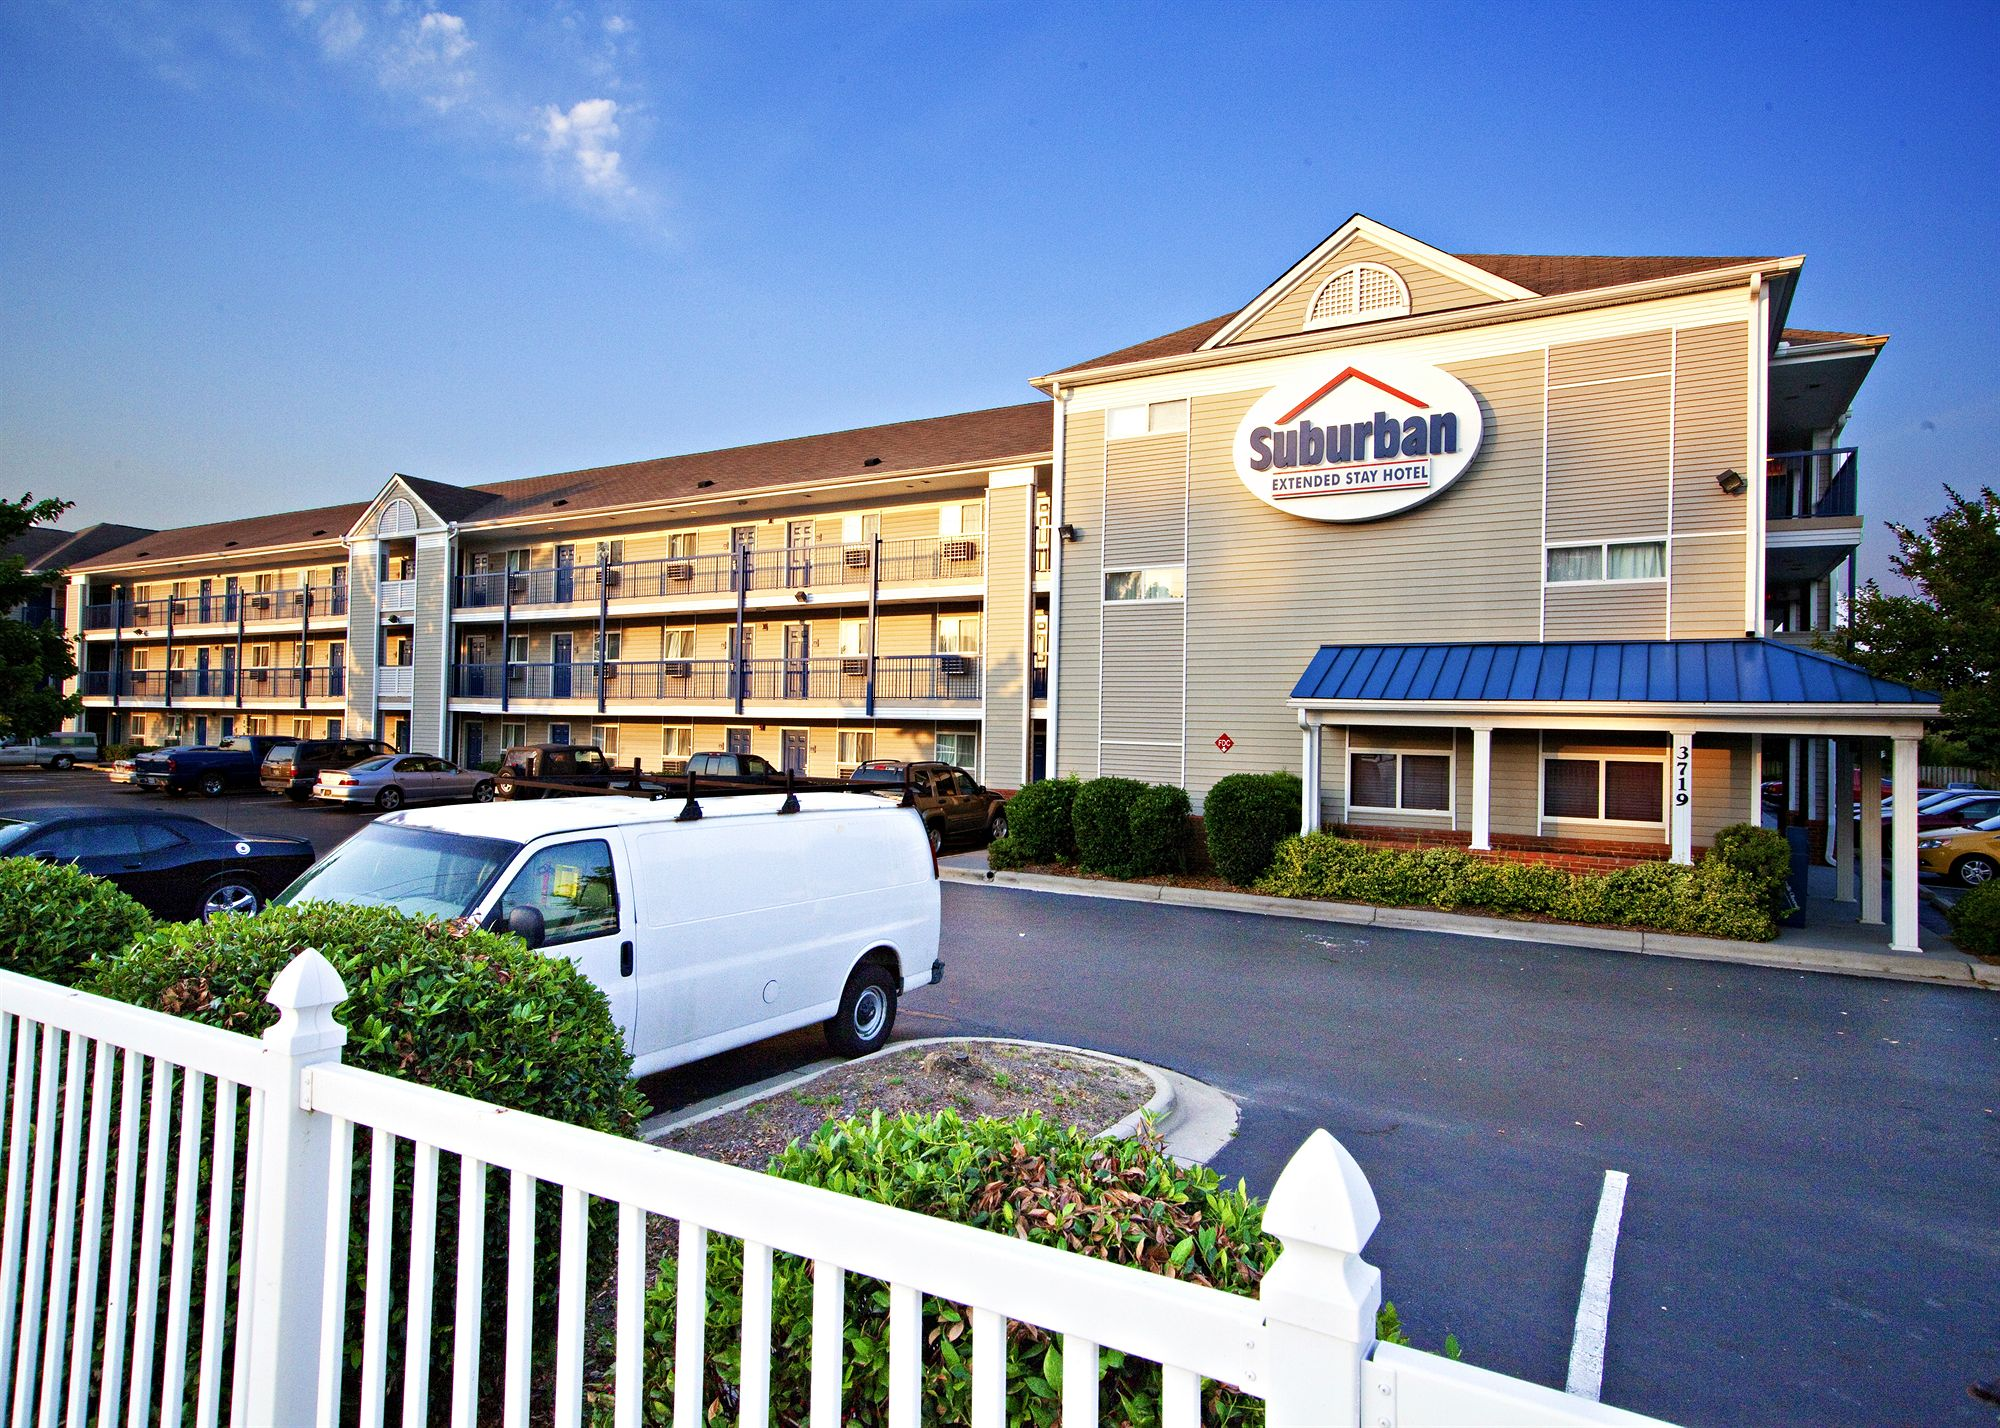 Fayetteville Hotel Coupons for Fayetteville, NC - FreeHotelCoupons.com